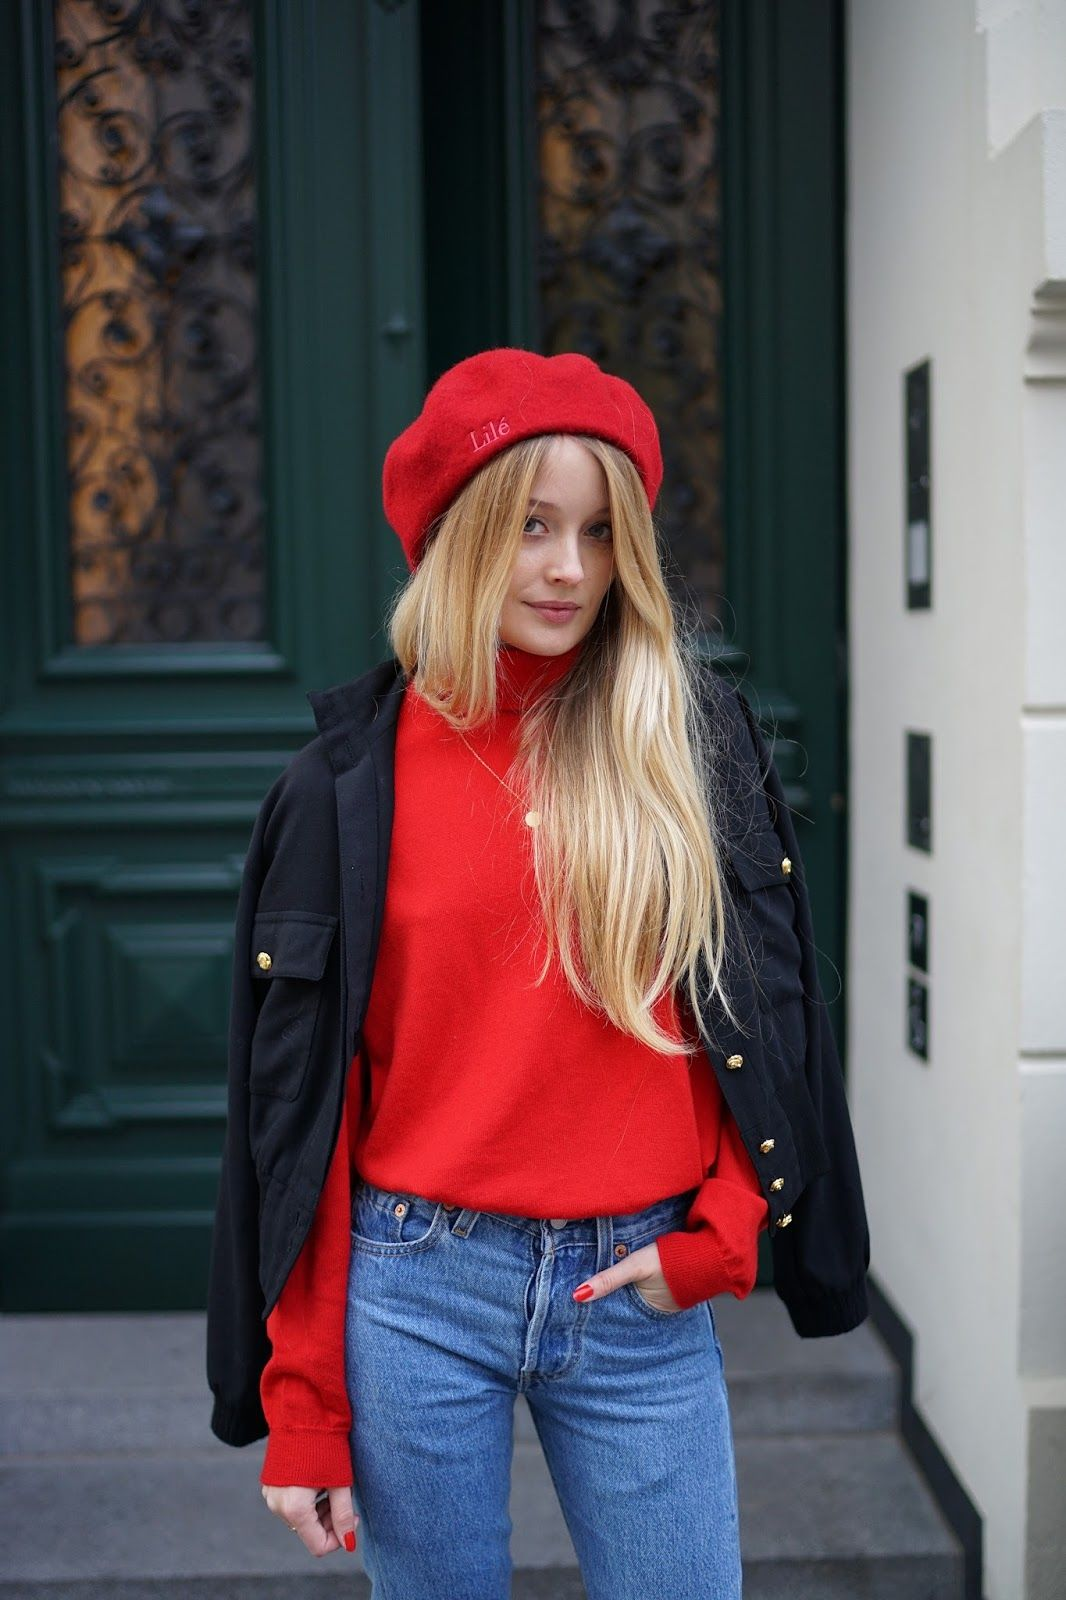 25048b2d0db Lilé Things Red Beret + Vintage Red Turtleneck + Levi s Jeans + Vintage  Leather Jacket + Paul Smith for Emma Hope Black Sock Booties via Patiness     Fashion ...